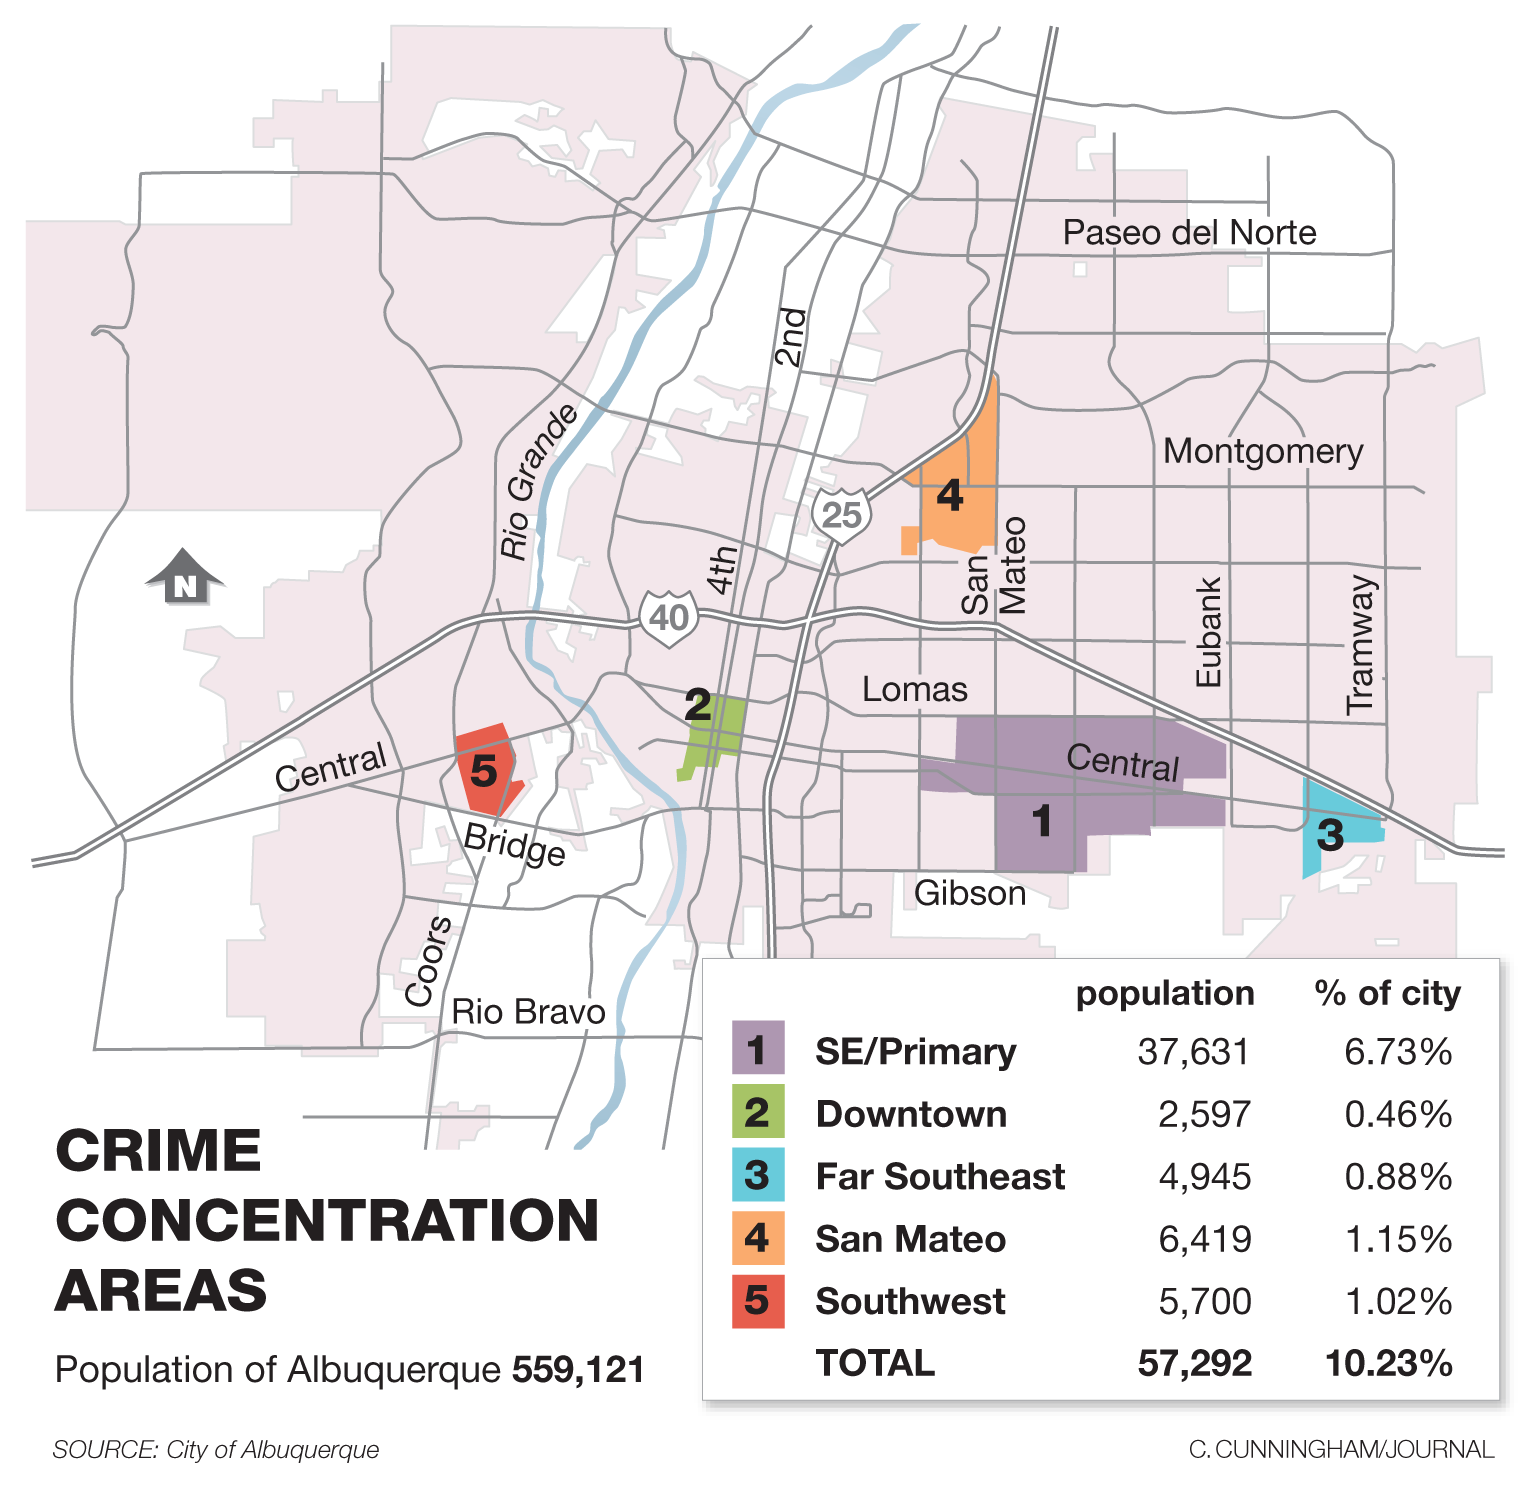 The 5 most violent areas to live in Albuquerque ... Map Of Abq on albuquerque parks map, albuquerque area zip code map, albuquerque international sunport map, sunset map, albuquerque new mexico map, old town albuquerque map, downtown albuquerque map, albuquerque city map, albuquerque bike map, albuquerque neighborhood map, abc map, albq map, albuquerque academy map, albuquerque county map, albuquerque airport map, fat map, jan map, end times map, albuquerque new home location map, san map,